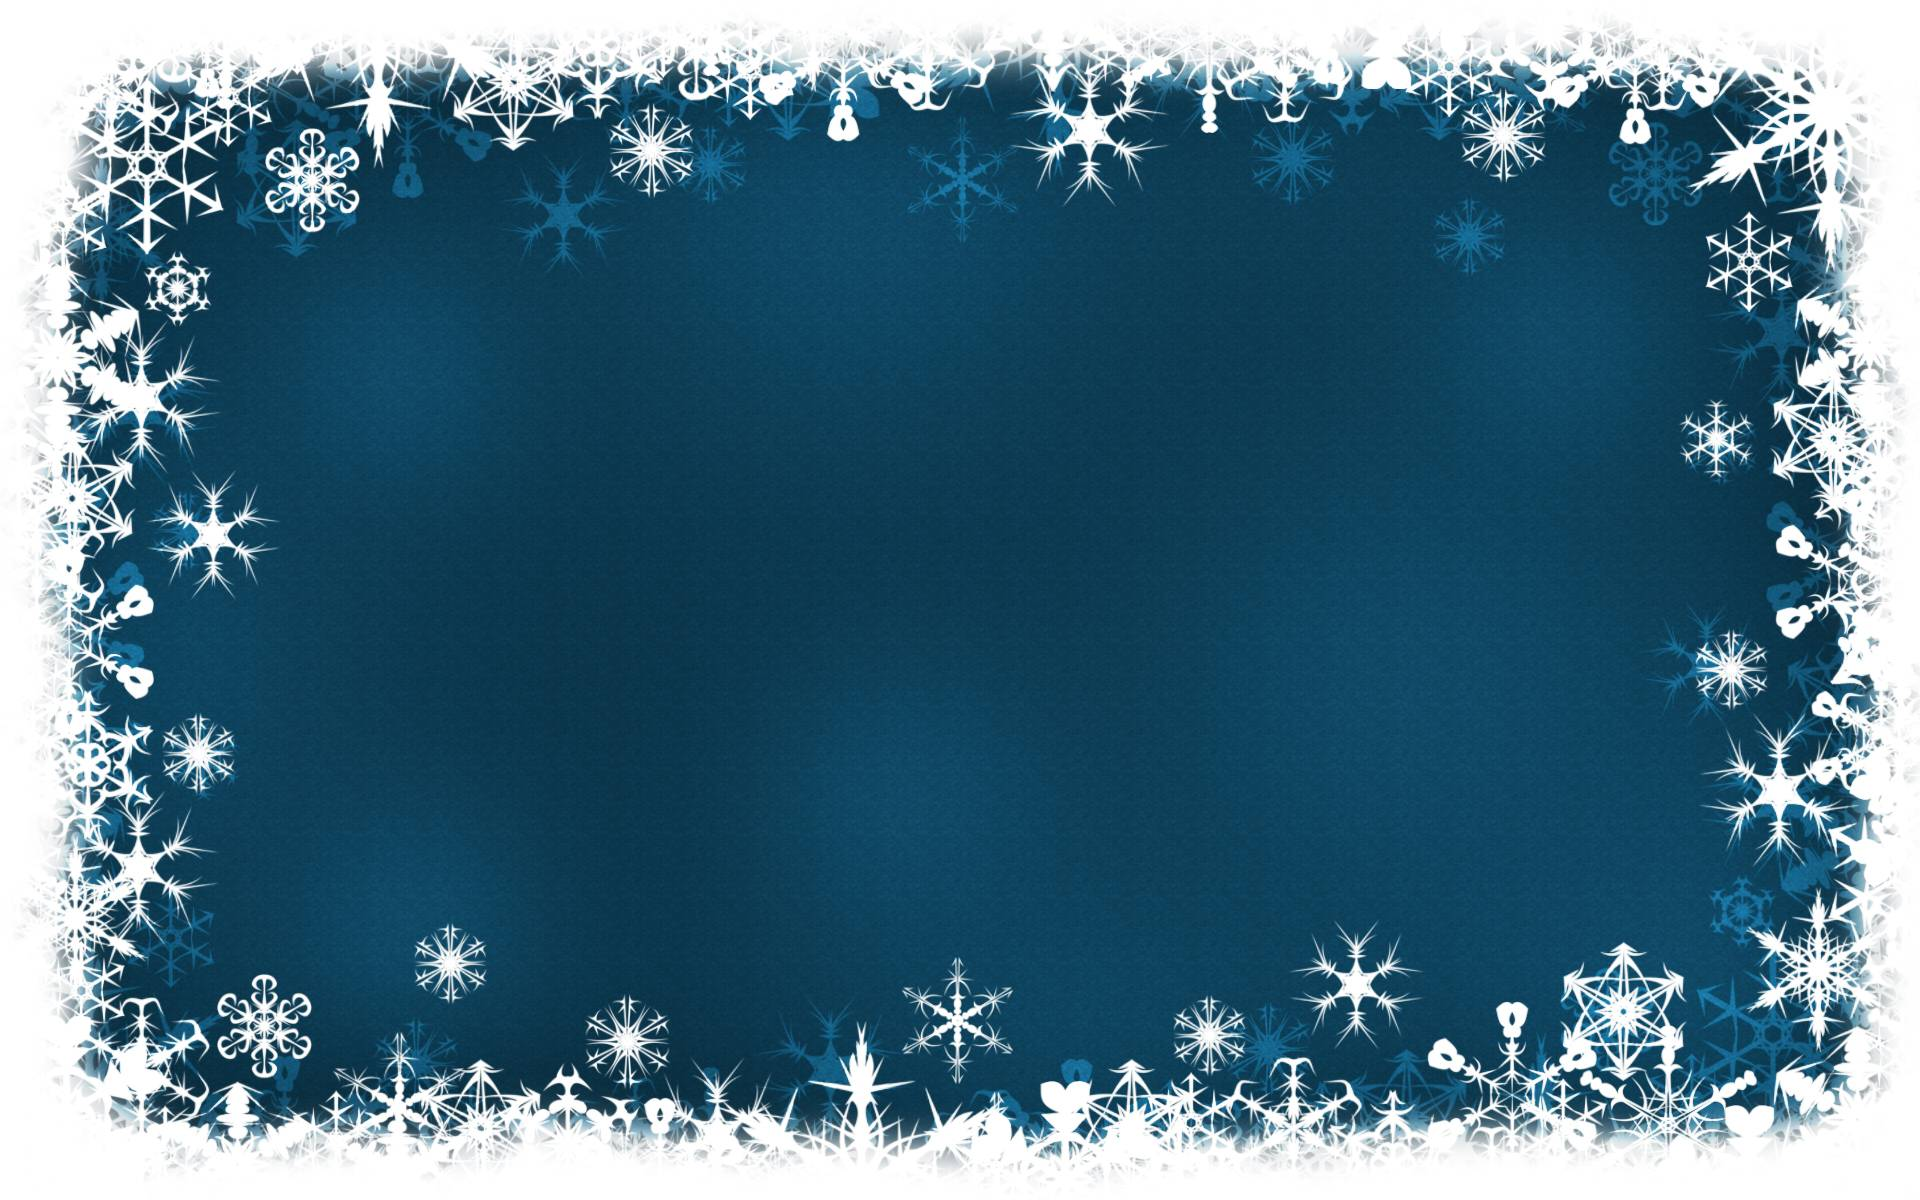 Christmas Backgrounds 11 Backgrounds